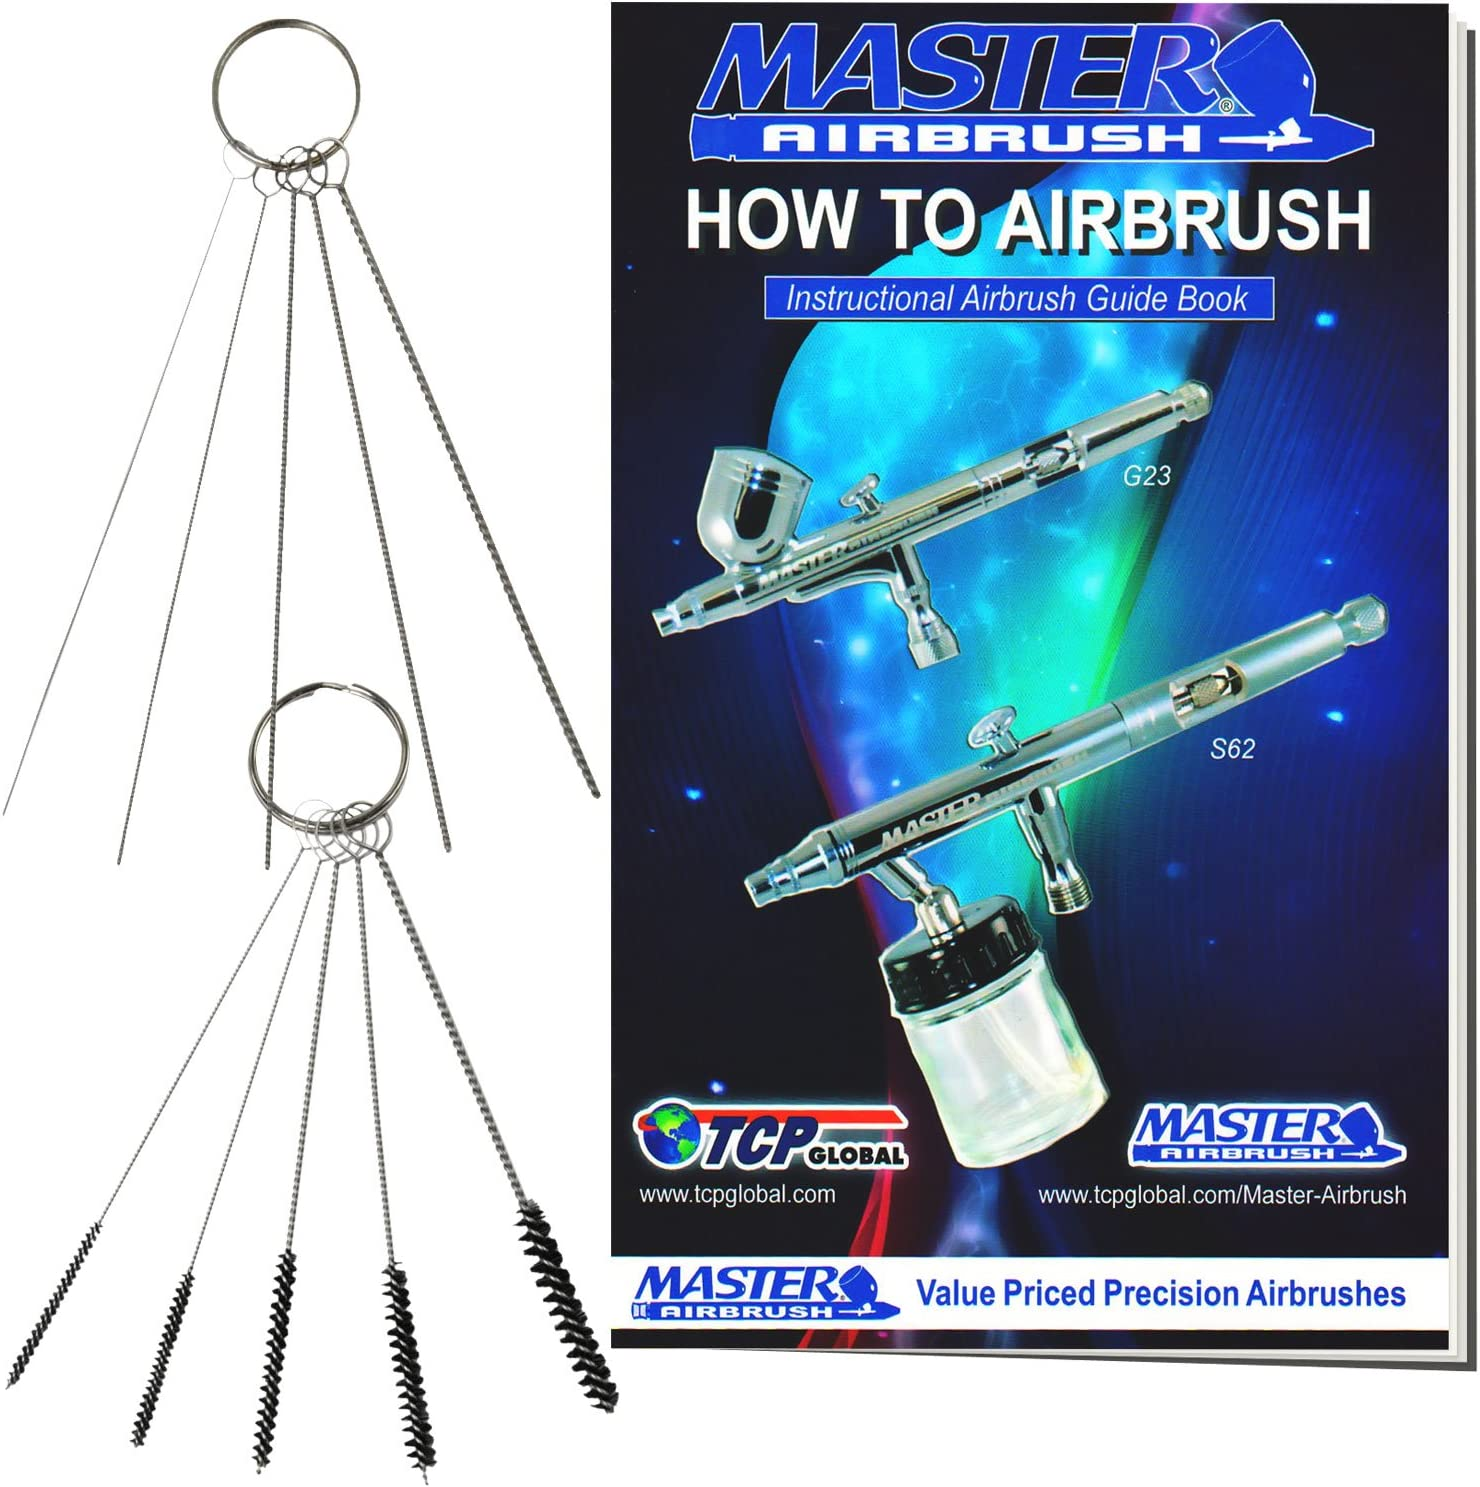 5 pc Cleaning Needles 5 pc Cleaning Brushes How to Book 1 Wash Needle Master Airbrush 12 Piece Airbrush Cleaning Kit